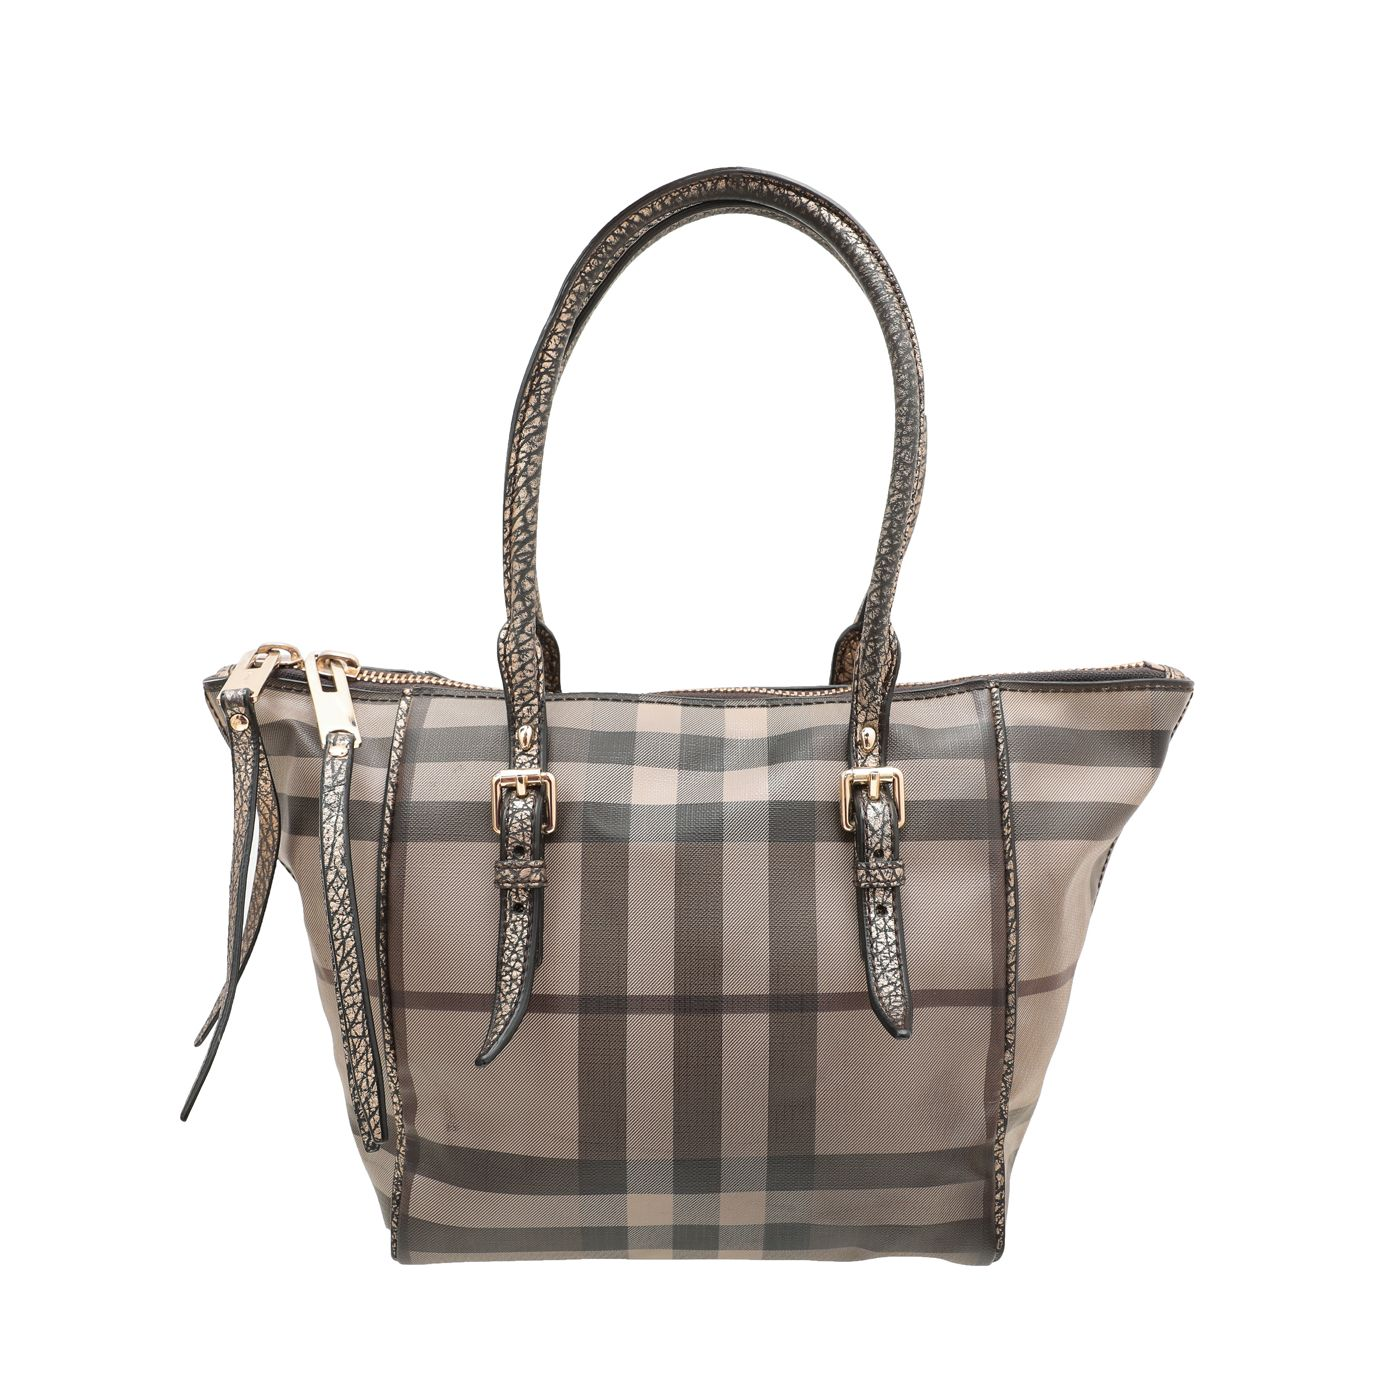 Burberry Antique Gold Smoked Check Small Salisbury Tote Bag